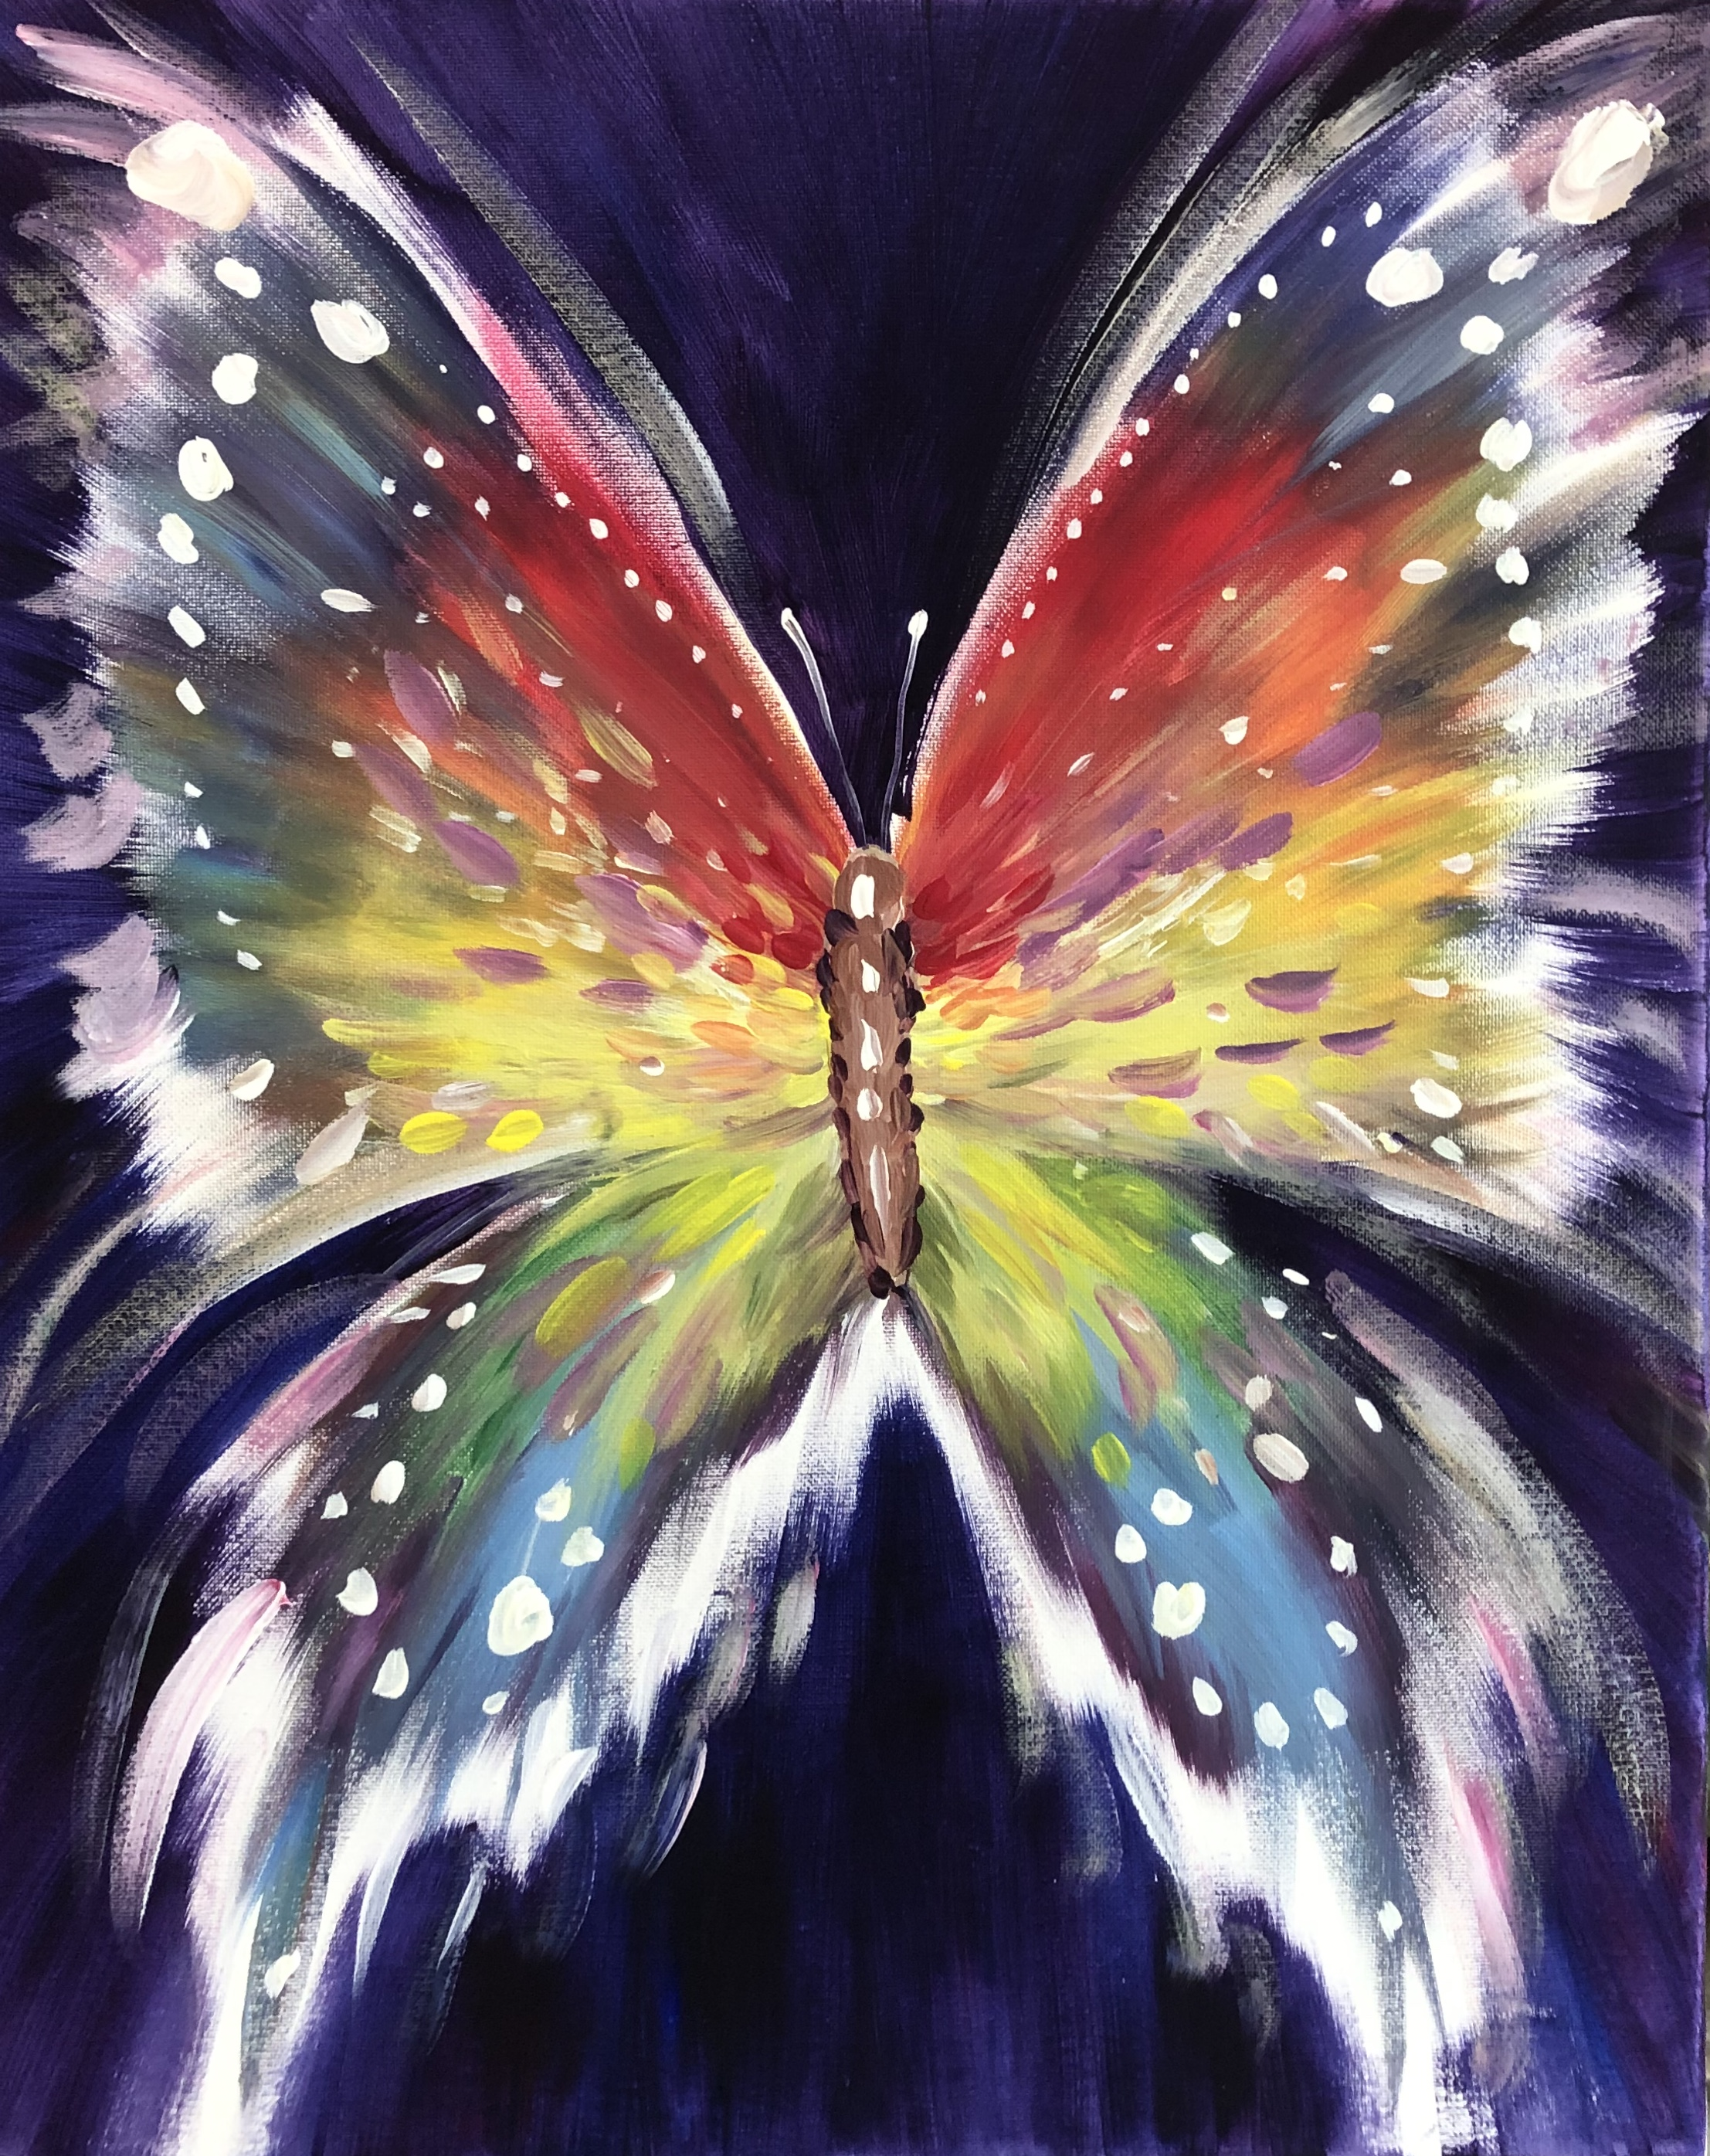 A Rainbow Butterfly Dream experience project by Yaymaker